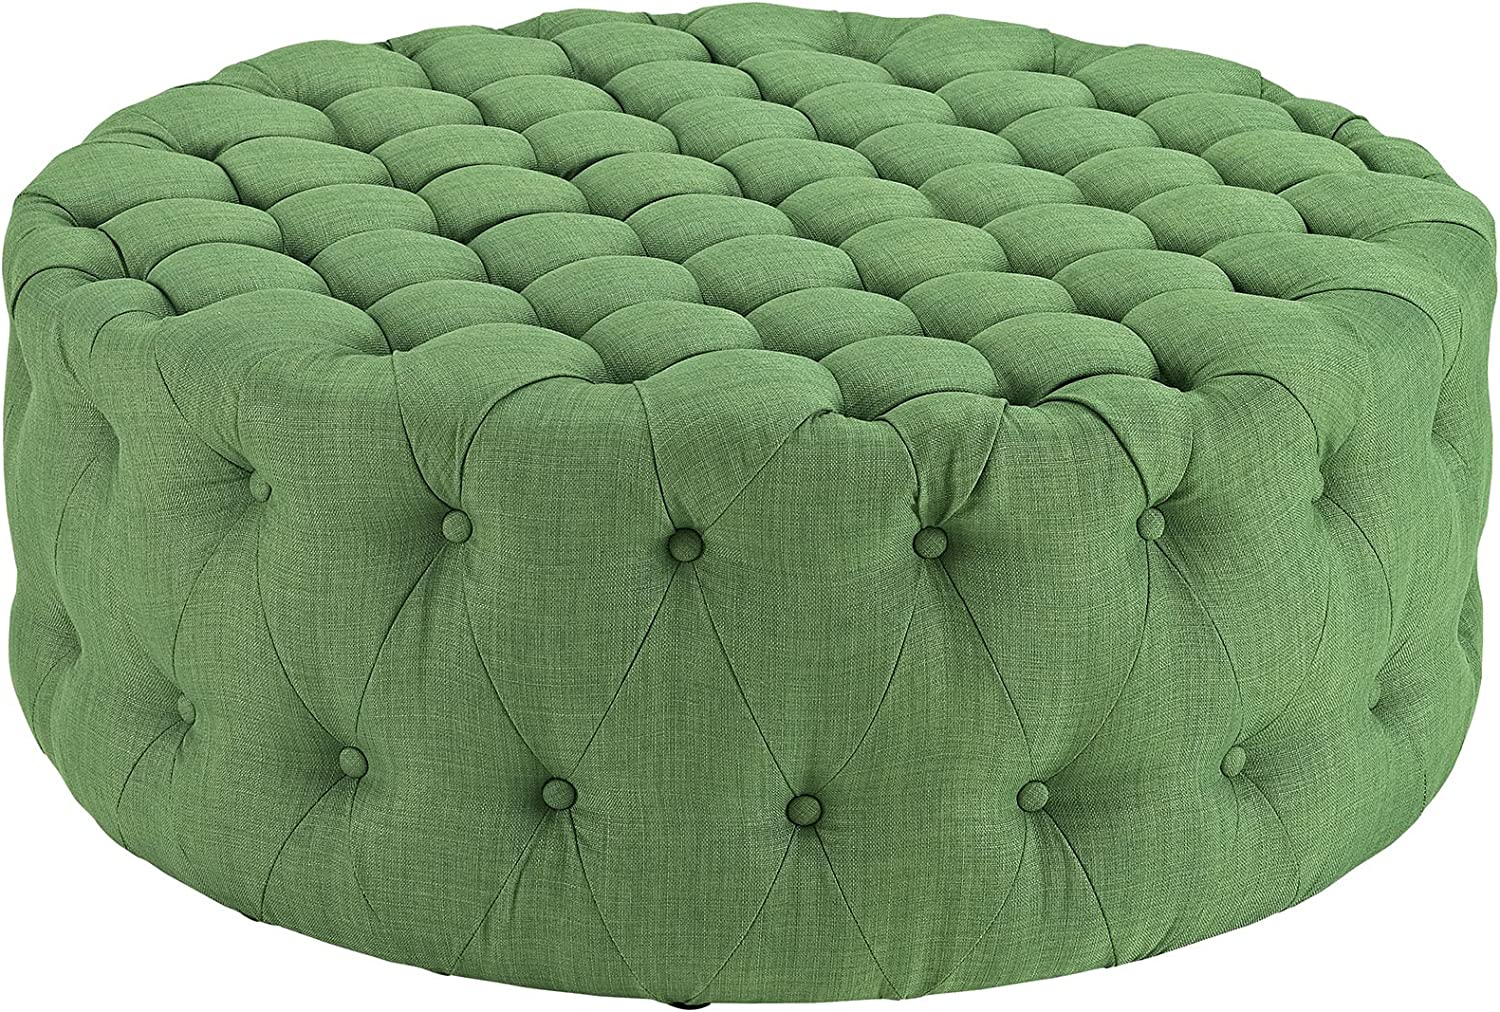 Modway Amour Fabric Upholstered Button-Tufted Round Ottoman in Kelly Green